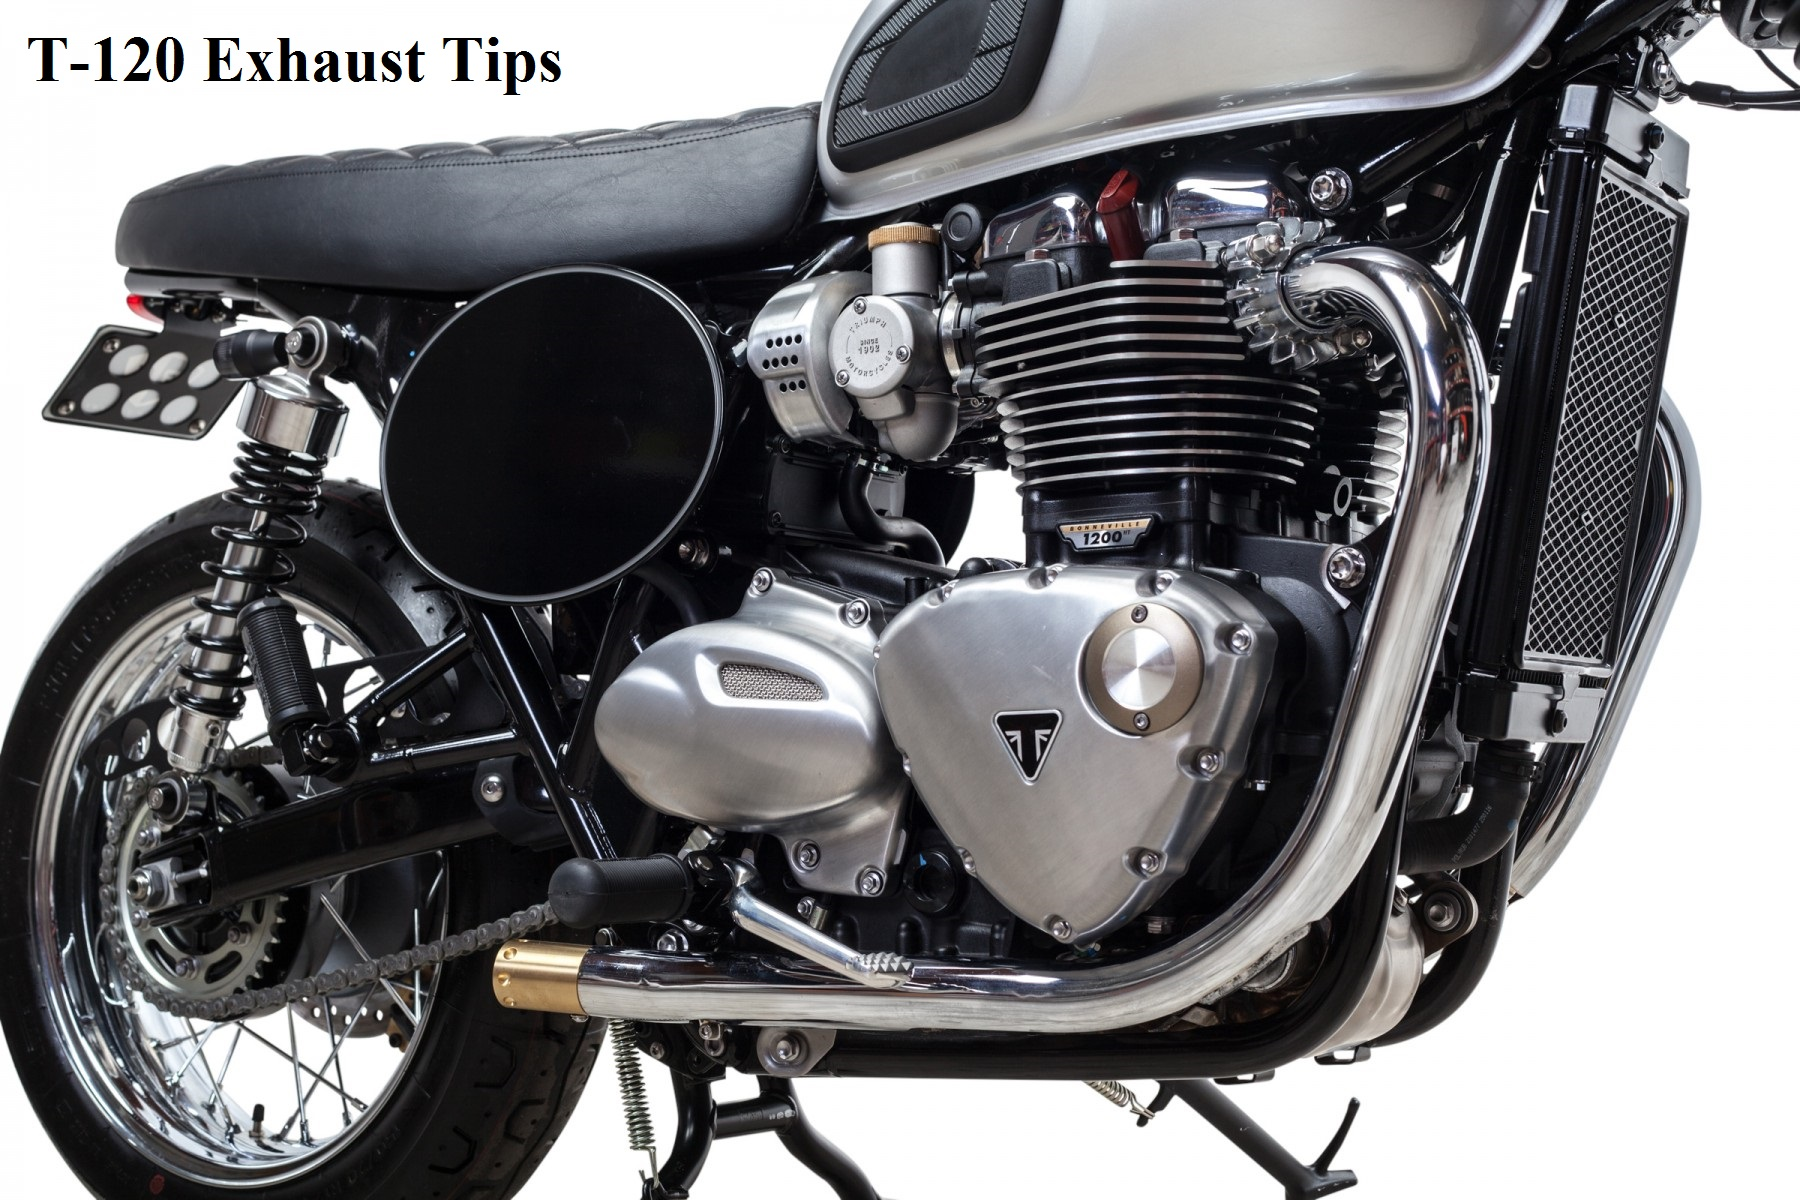 EXHAUST TIPS FOR T120 | BRASS